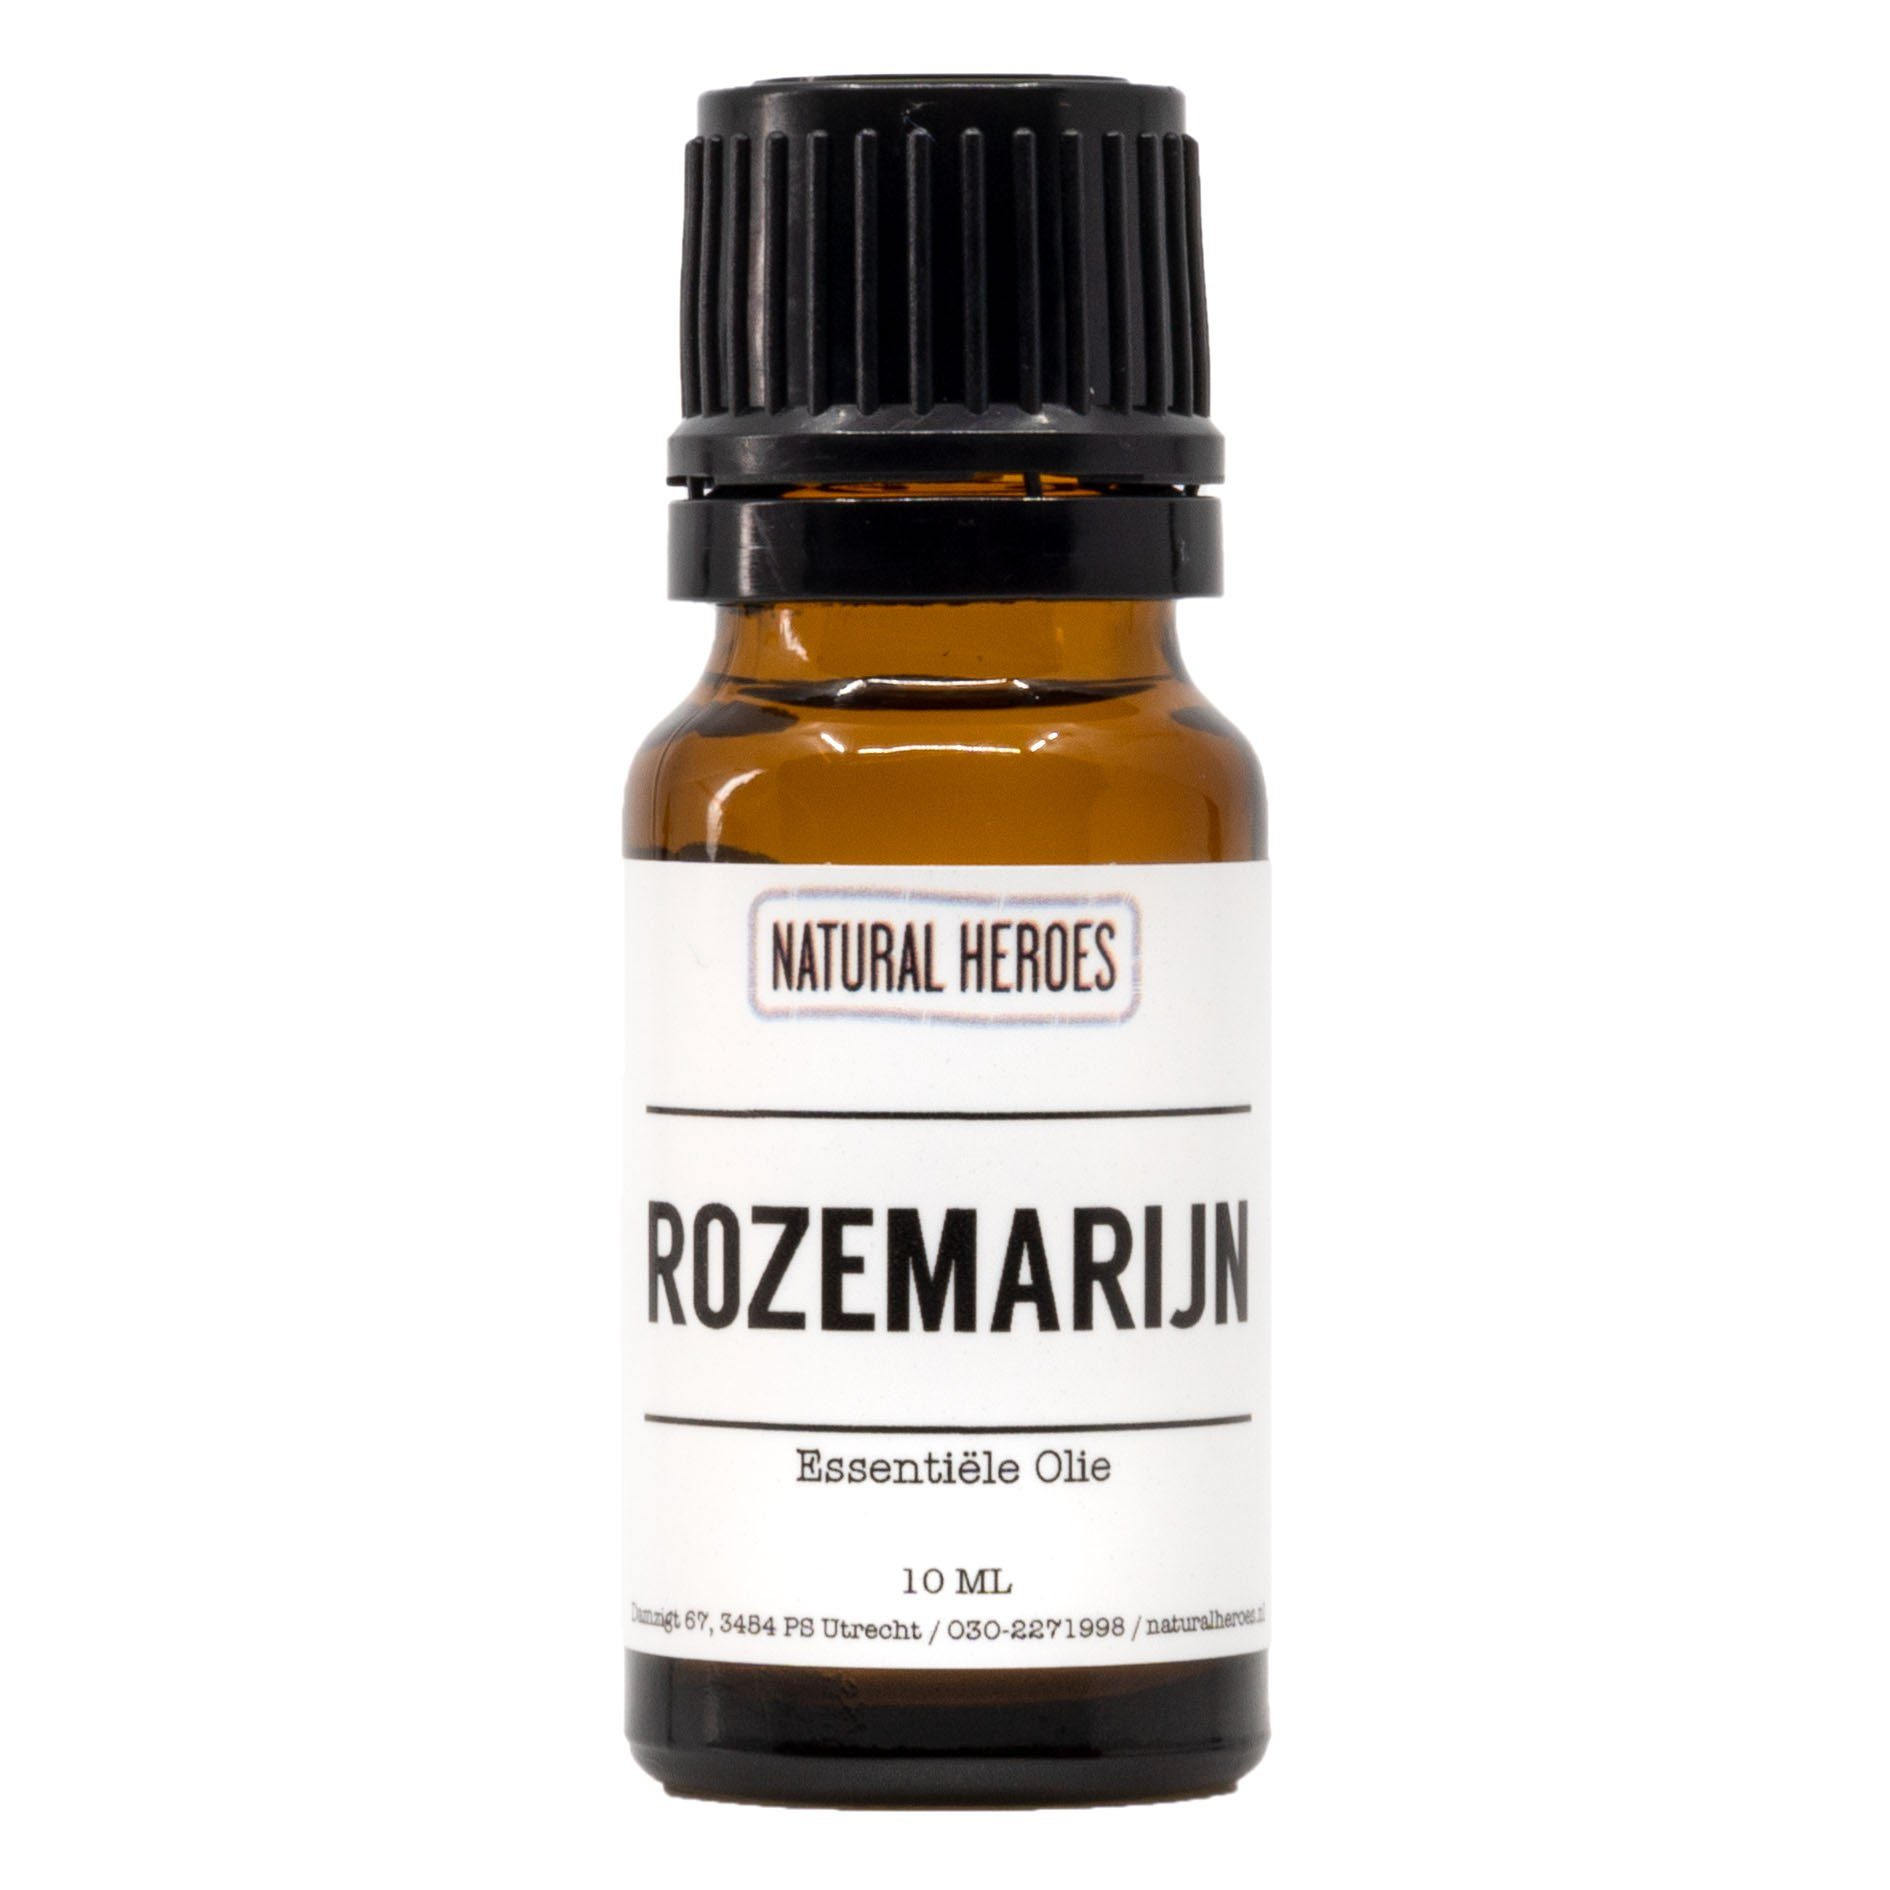 Rozemarijn Essentiële Olie Natural Heroes 10 ml